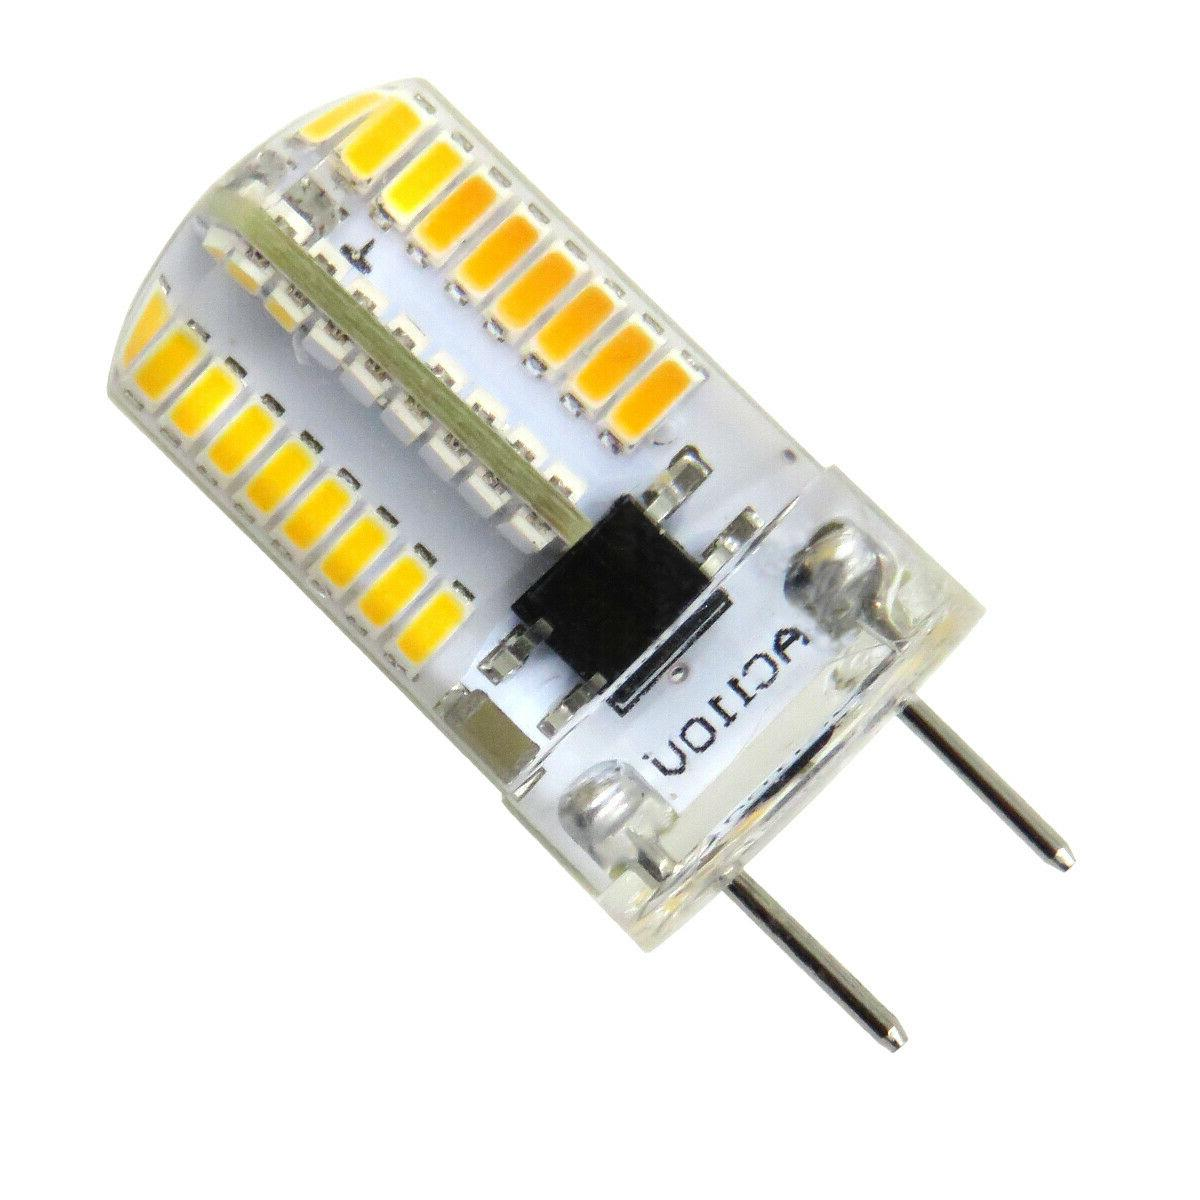 10pcs Bi-Pin T5 Lights Light Dimmable White/Warm 120V